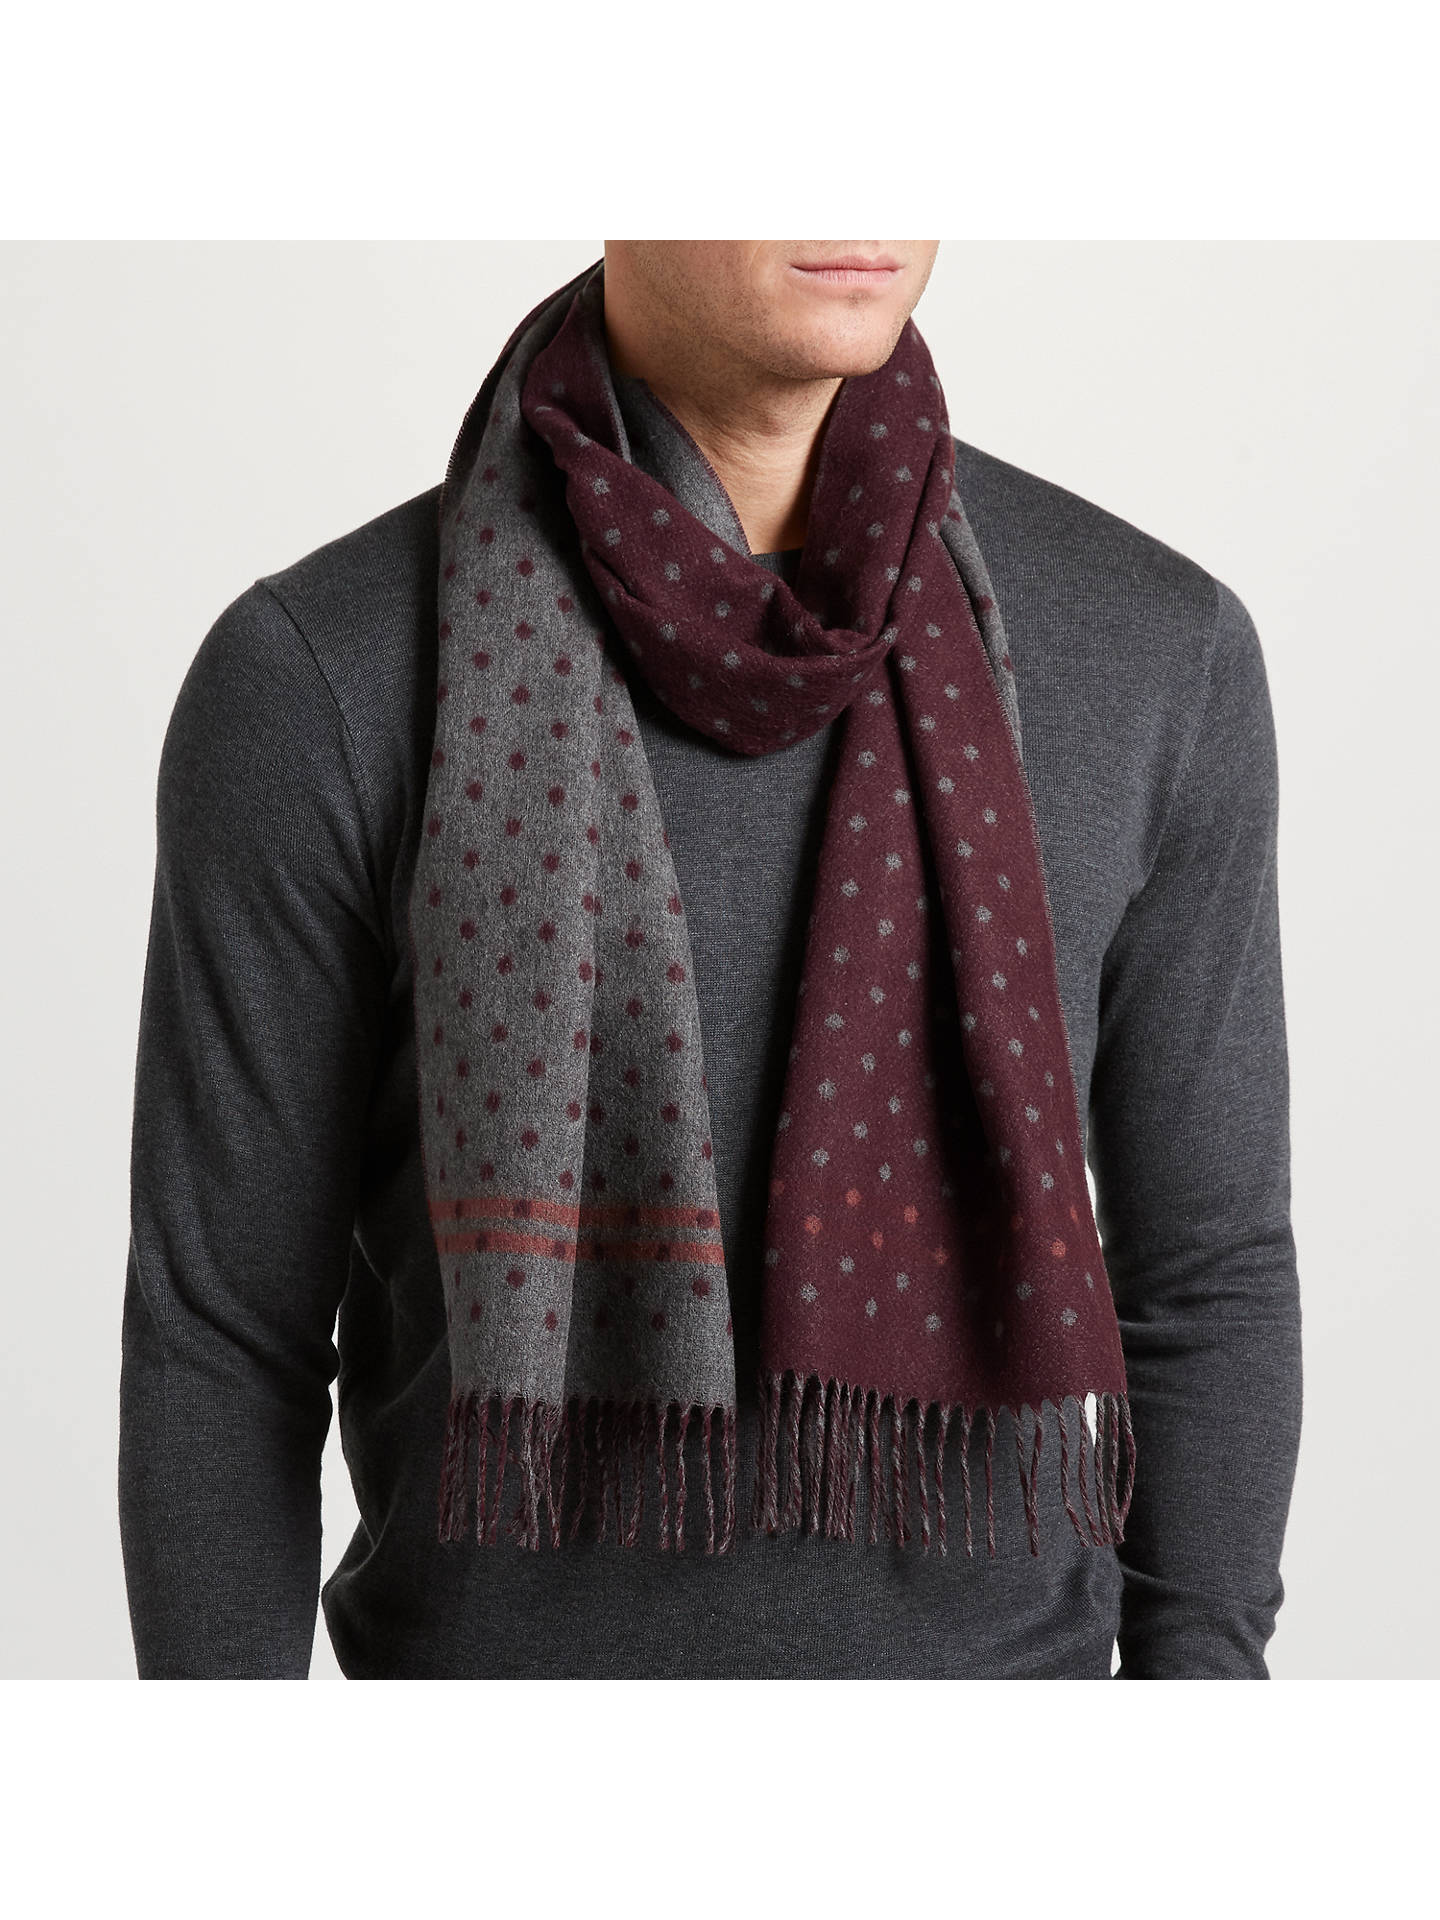 3e3d4fba7fb4 Ted Baker Redpine Spotted Scarf at John Lewis   Partners